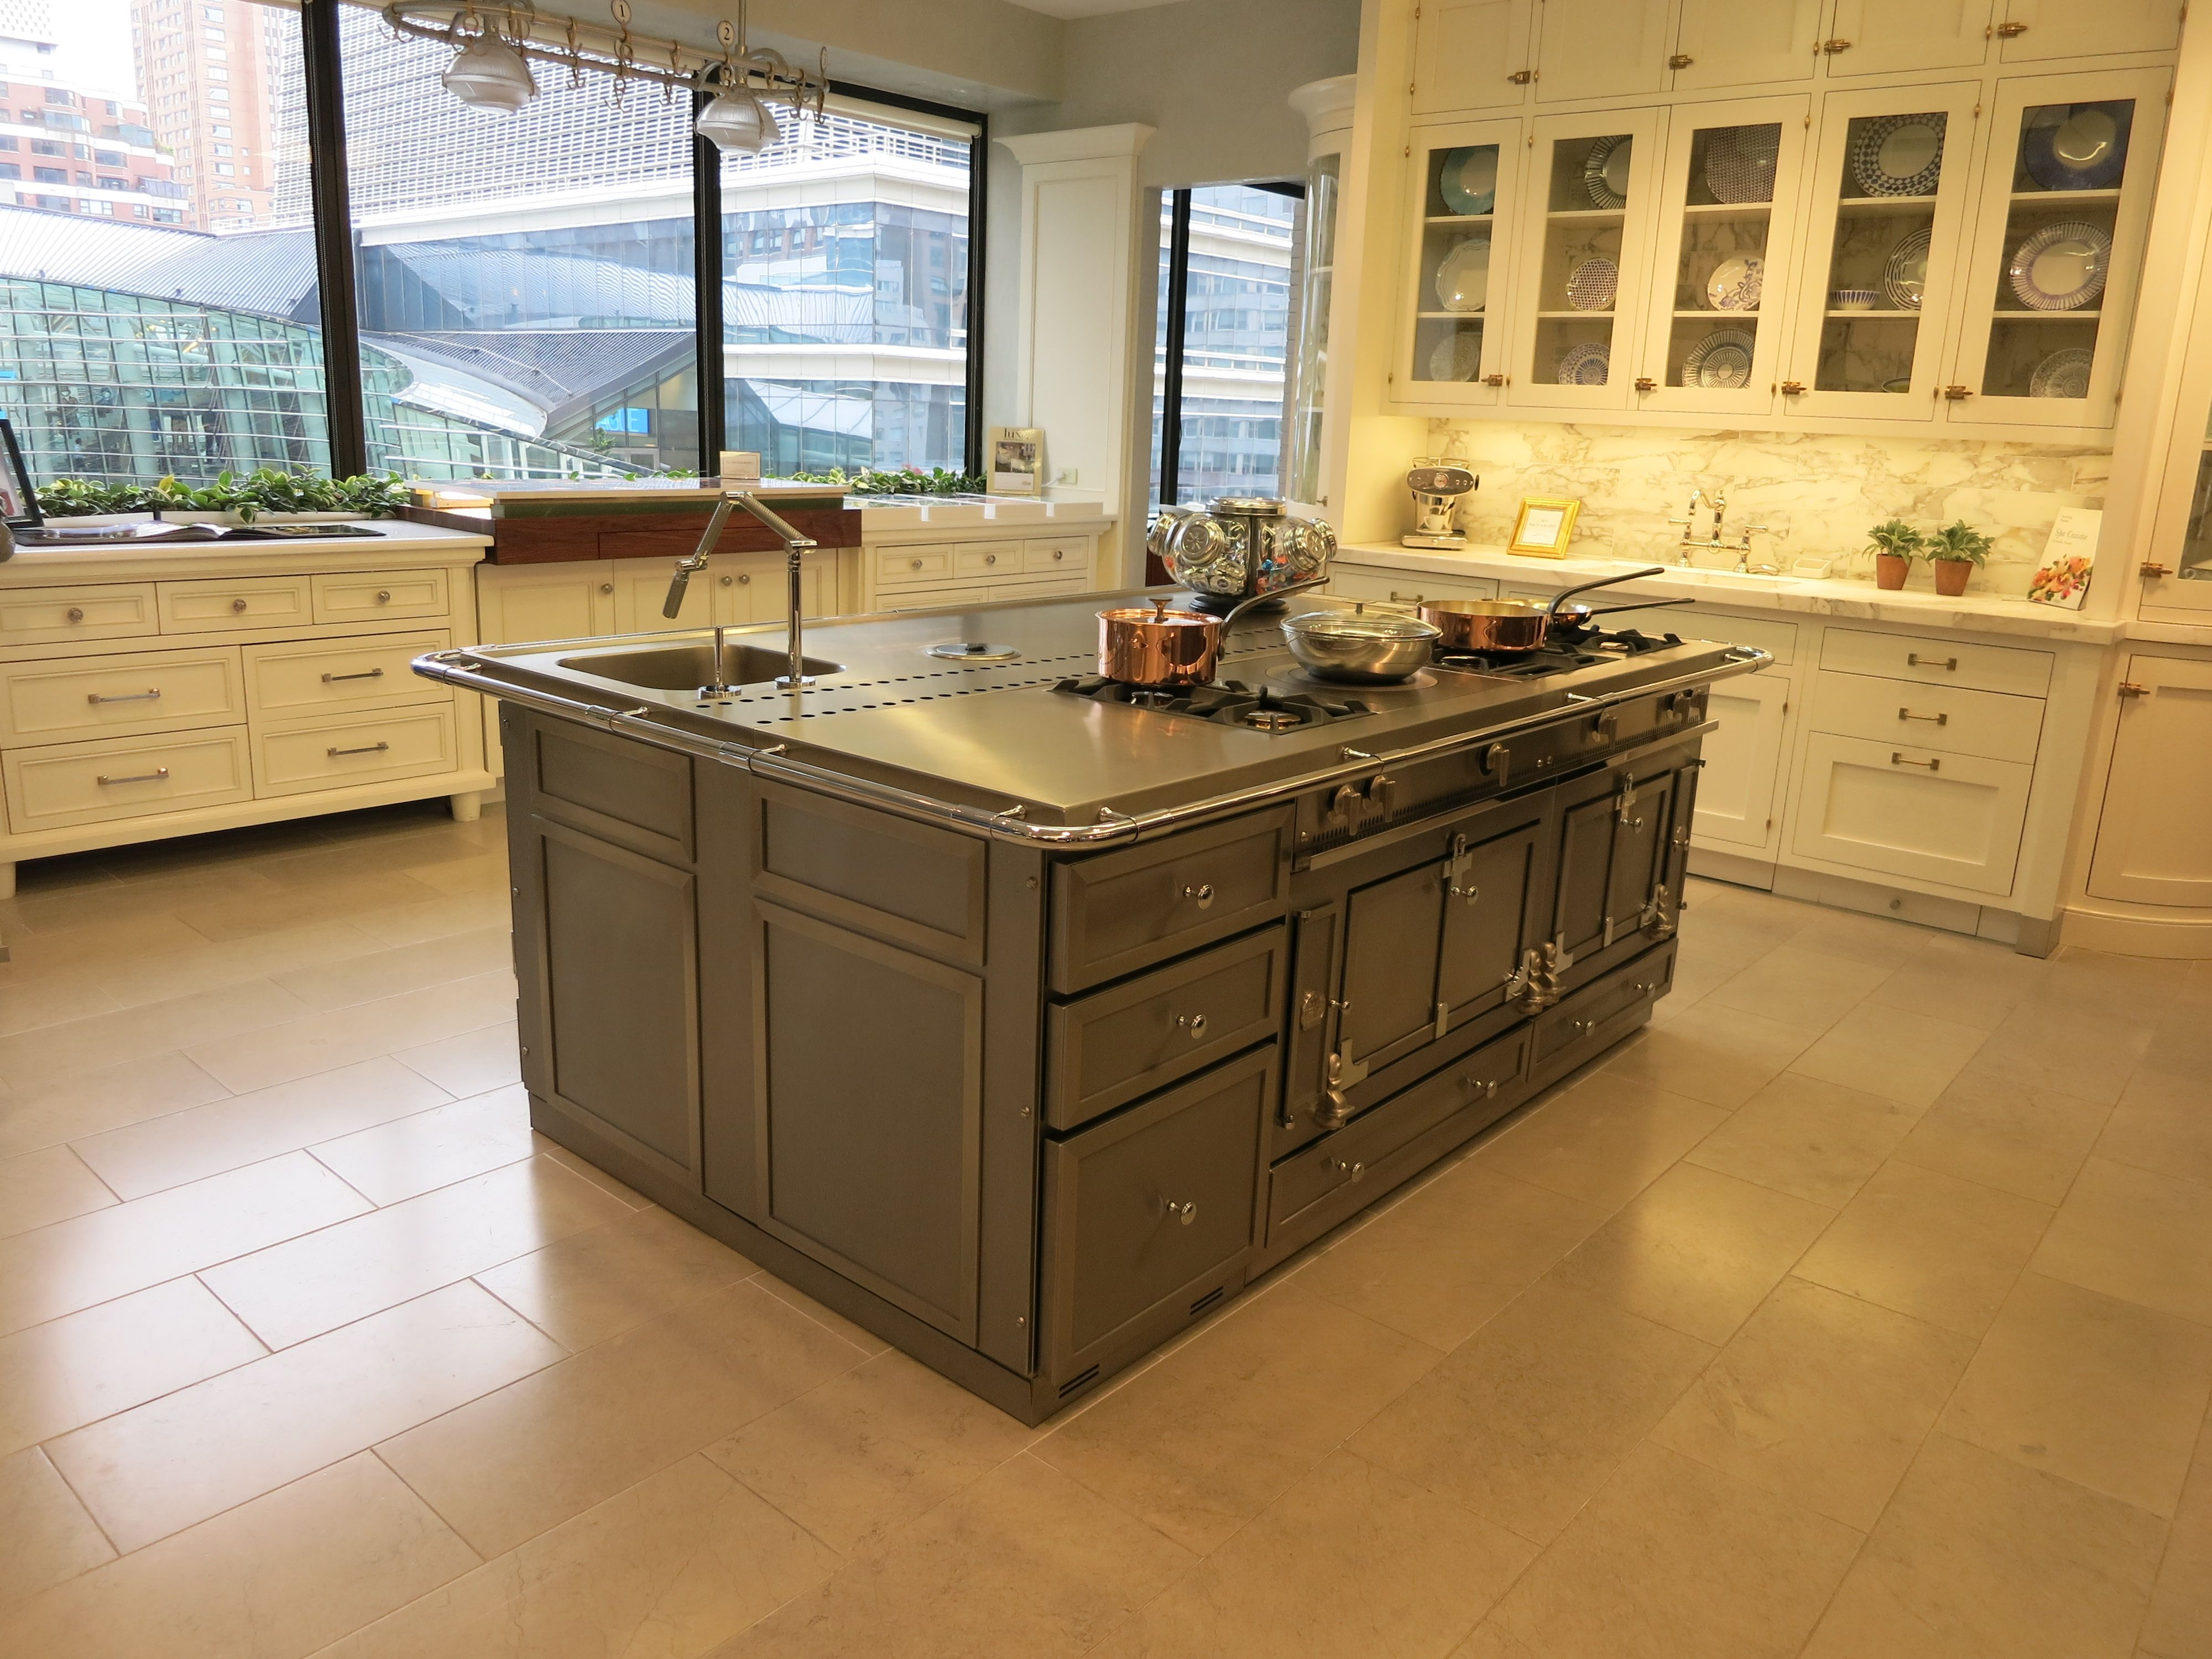 La Cornue Stainless Steel Island You Can It Before We Remove From The Showroom S A Display So Pre Owned But Never Used